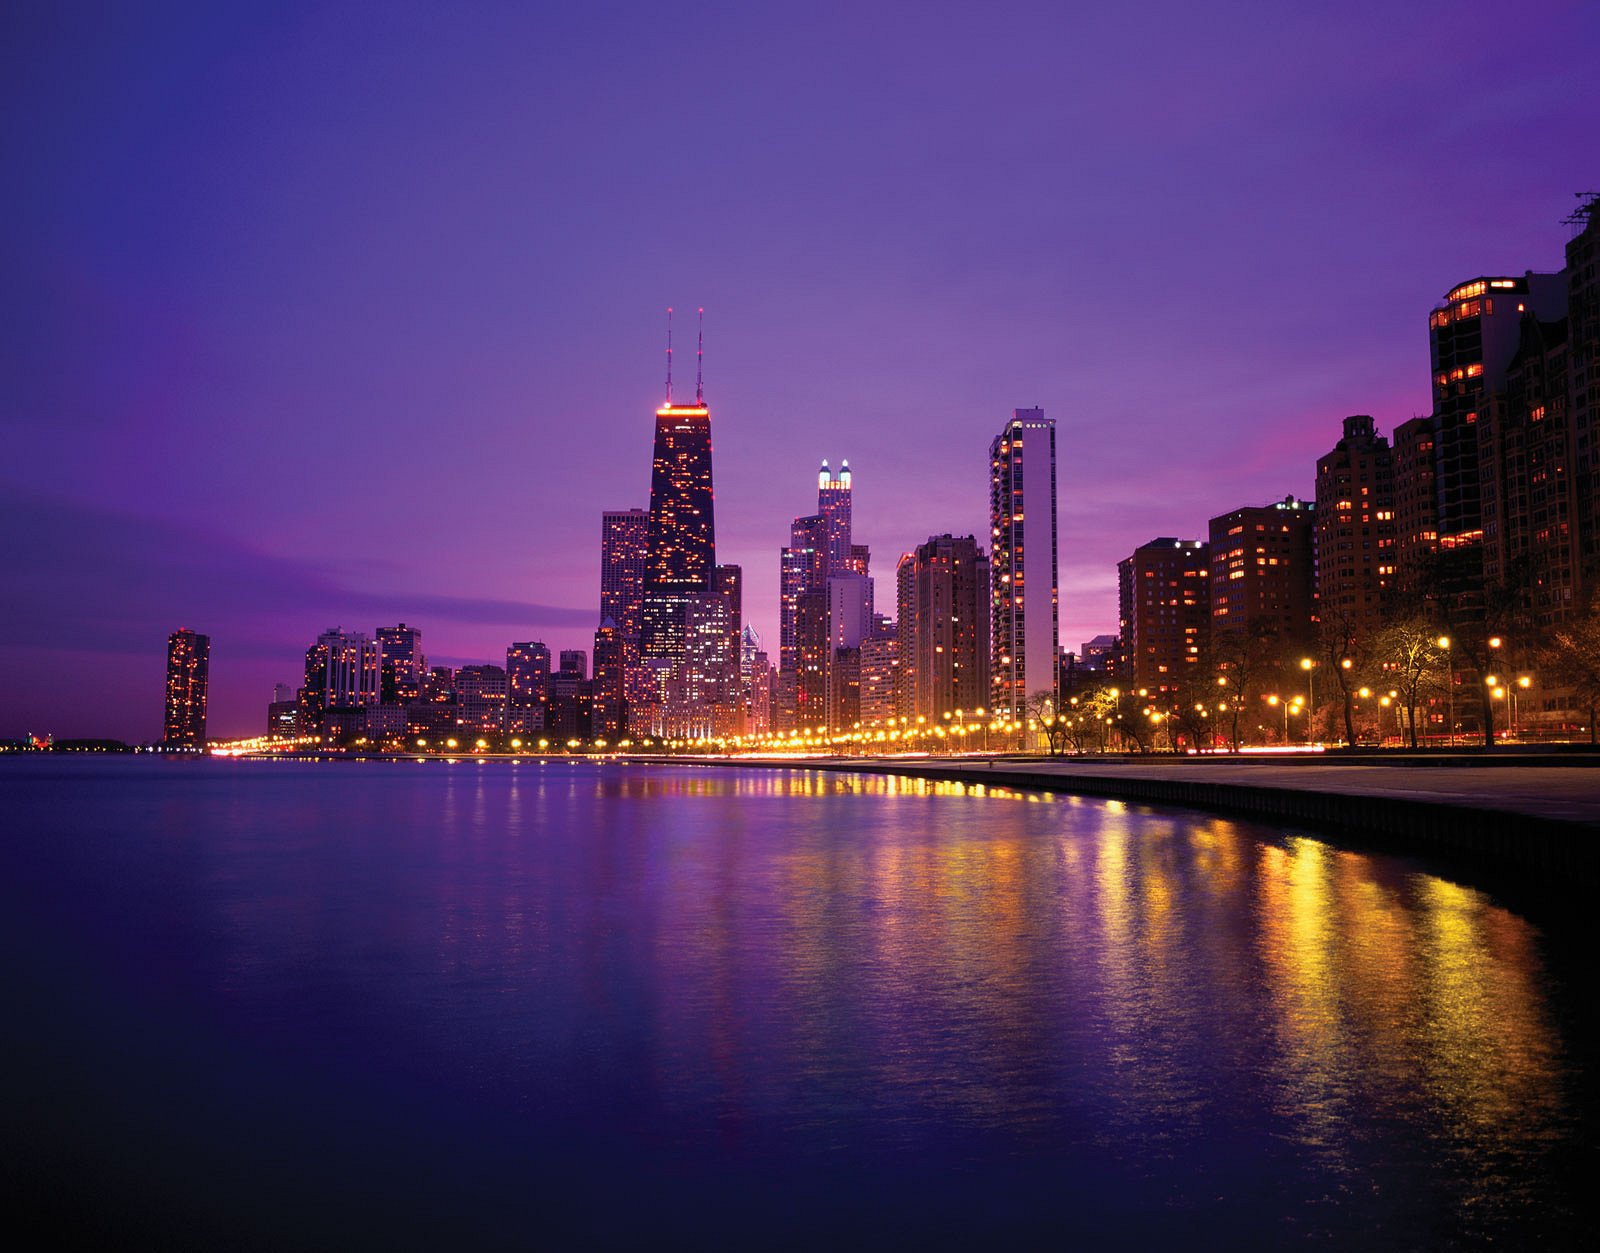 Chicago Skyline at Dusk Google image from http://media-2.web.britannica.com/eb-media/59/94459-050-DBA42467.jpg